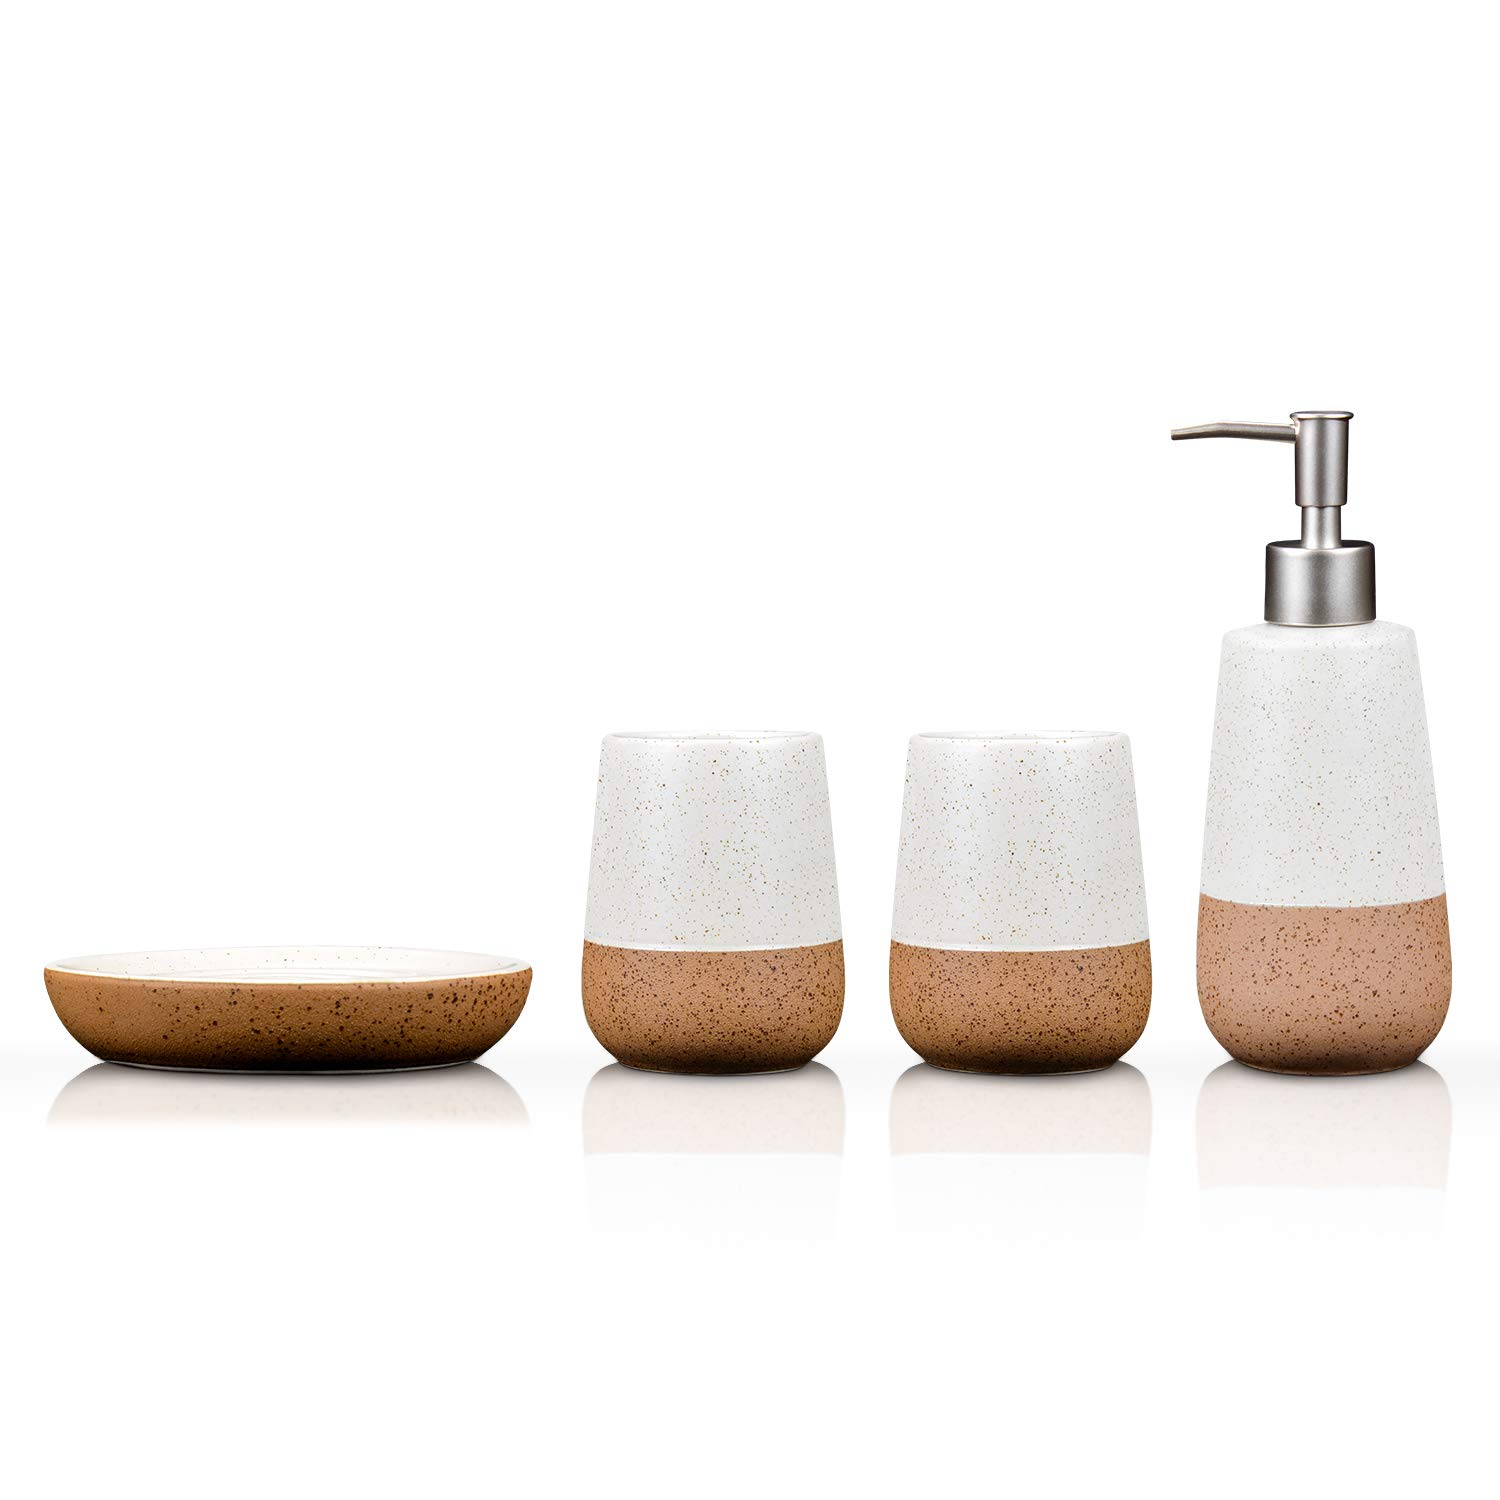 Fimary Ceramic Bathroom Accessories Set White-Including 4 Piece Bathroom Accessories Set Soap Dispenser, Toothbrush Holder, Tumbler, Soap Dish SJT-08